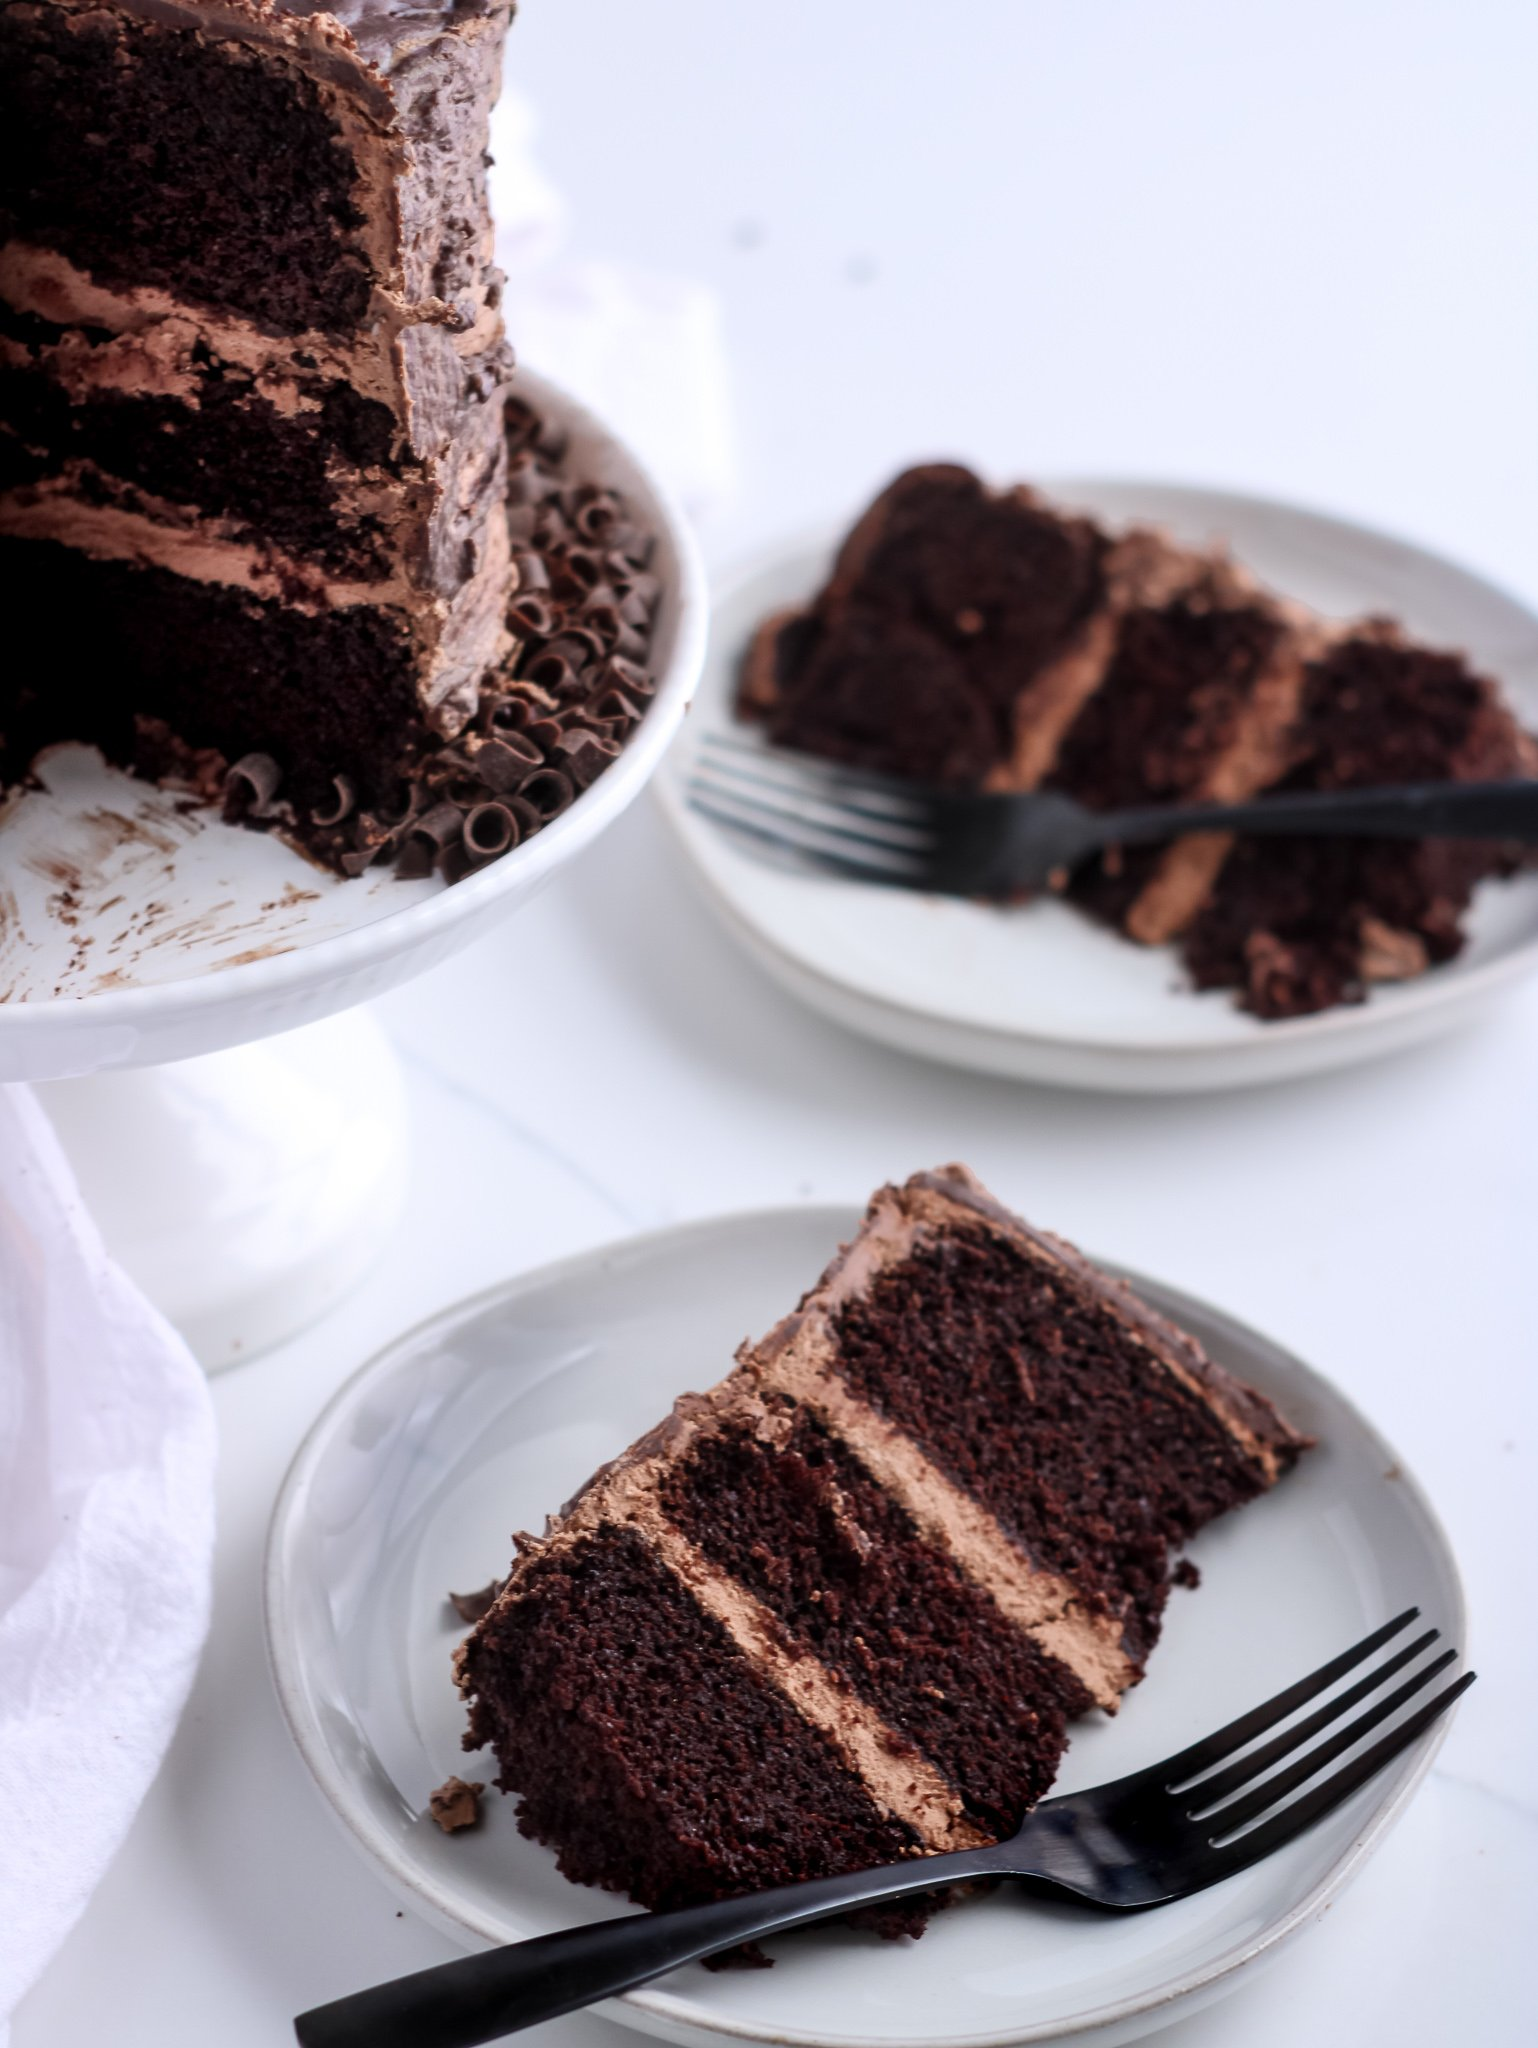 Gluten-free chocolate cake being slice from a white cake stand and being served onto light grey plates with black forks.